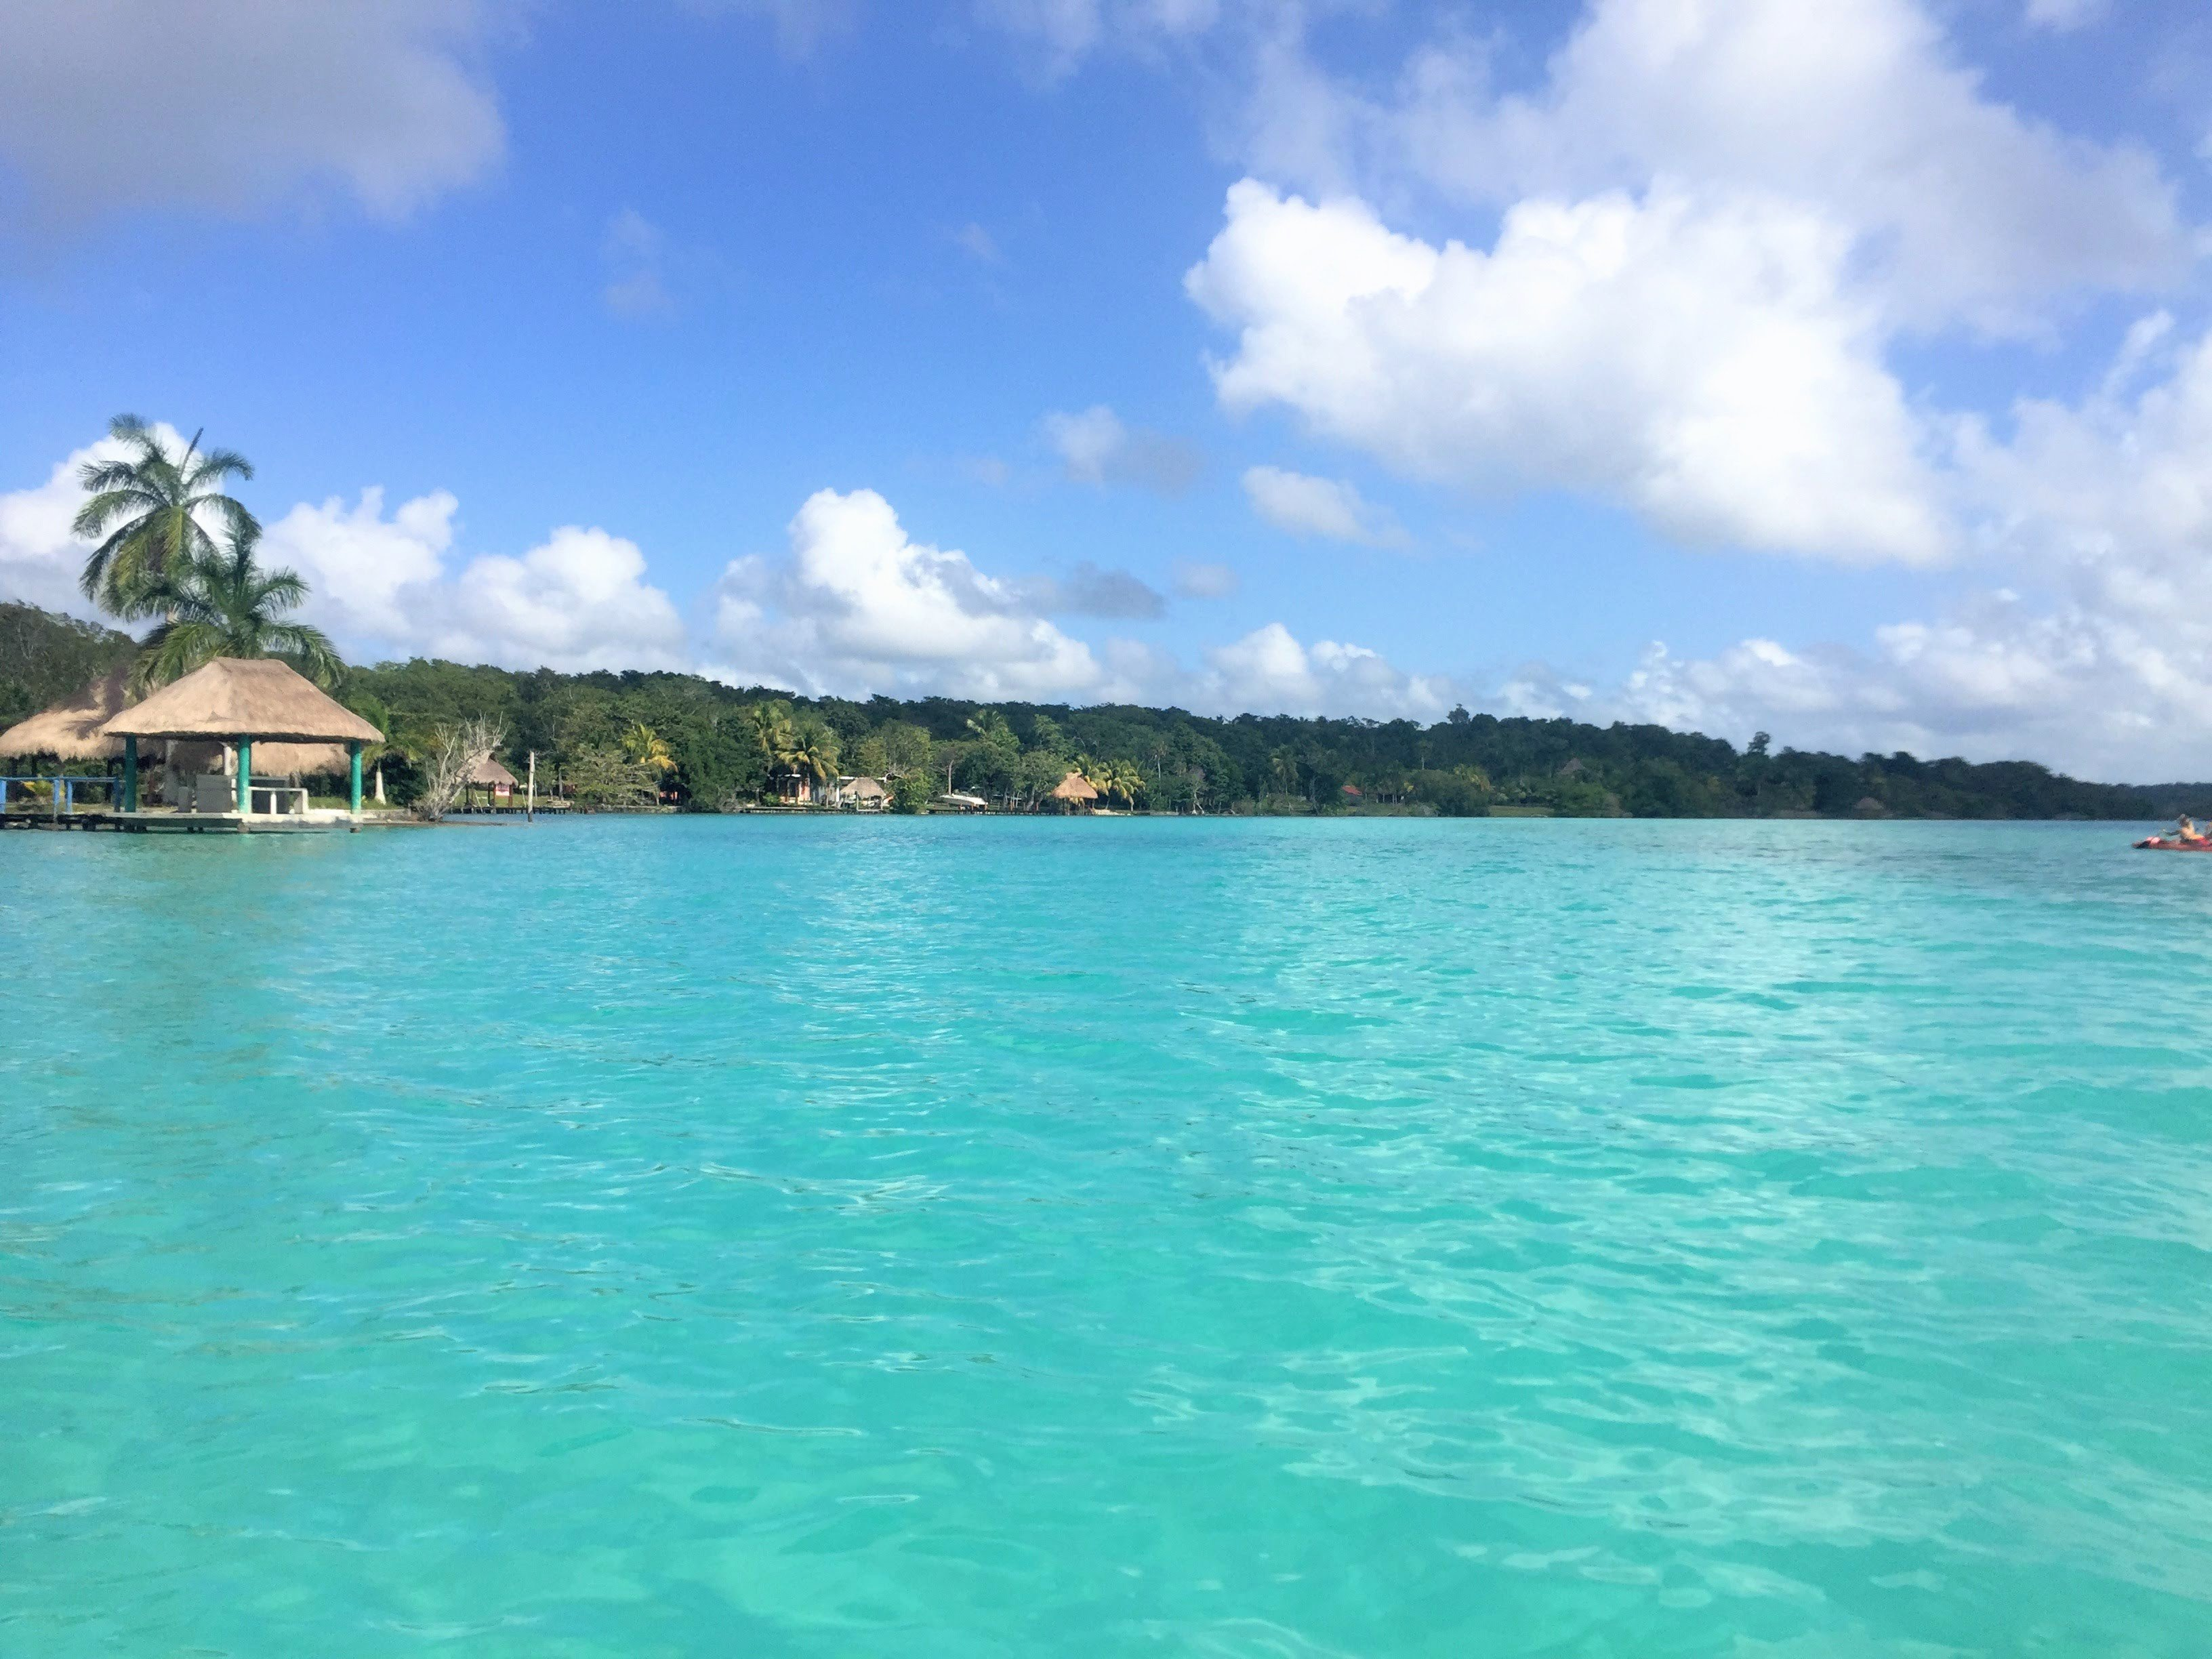 View of the shore and blue waters of laguna bacalar